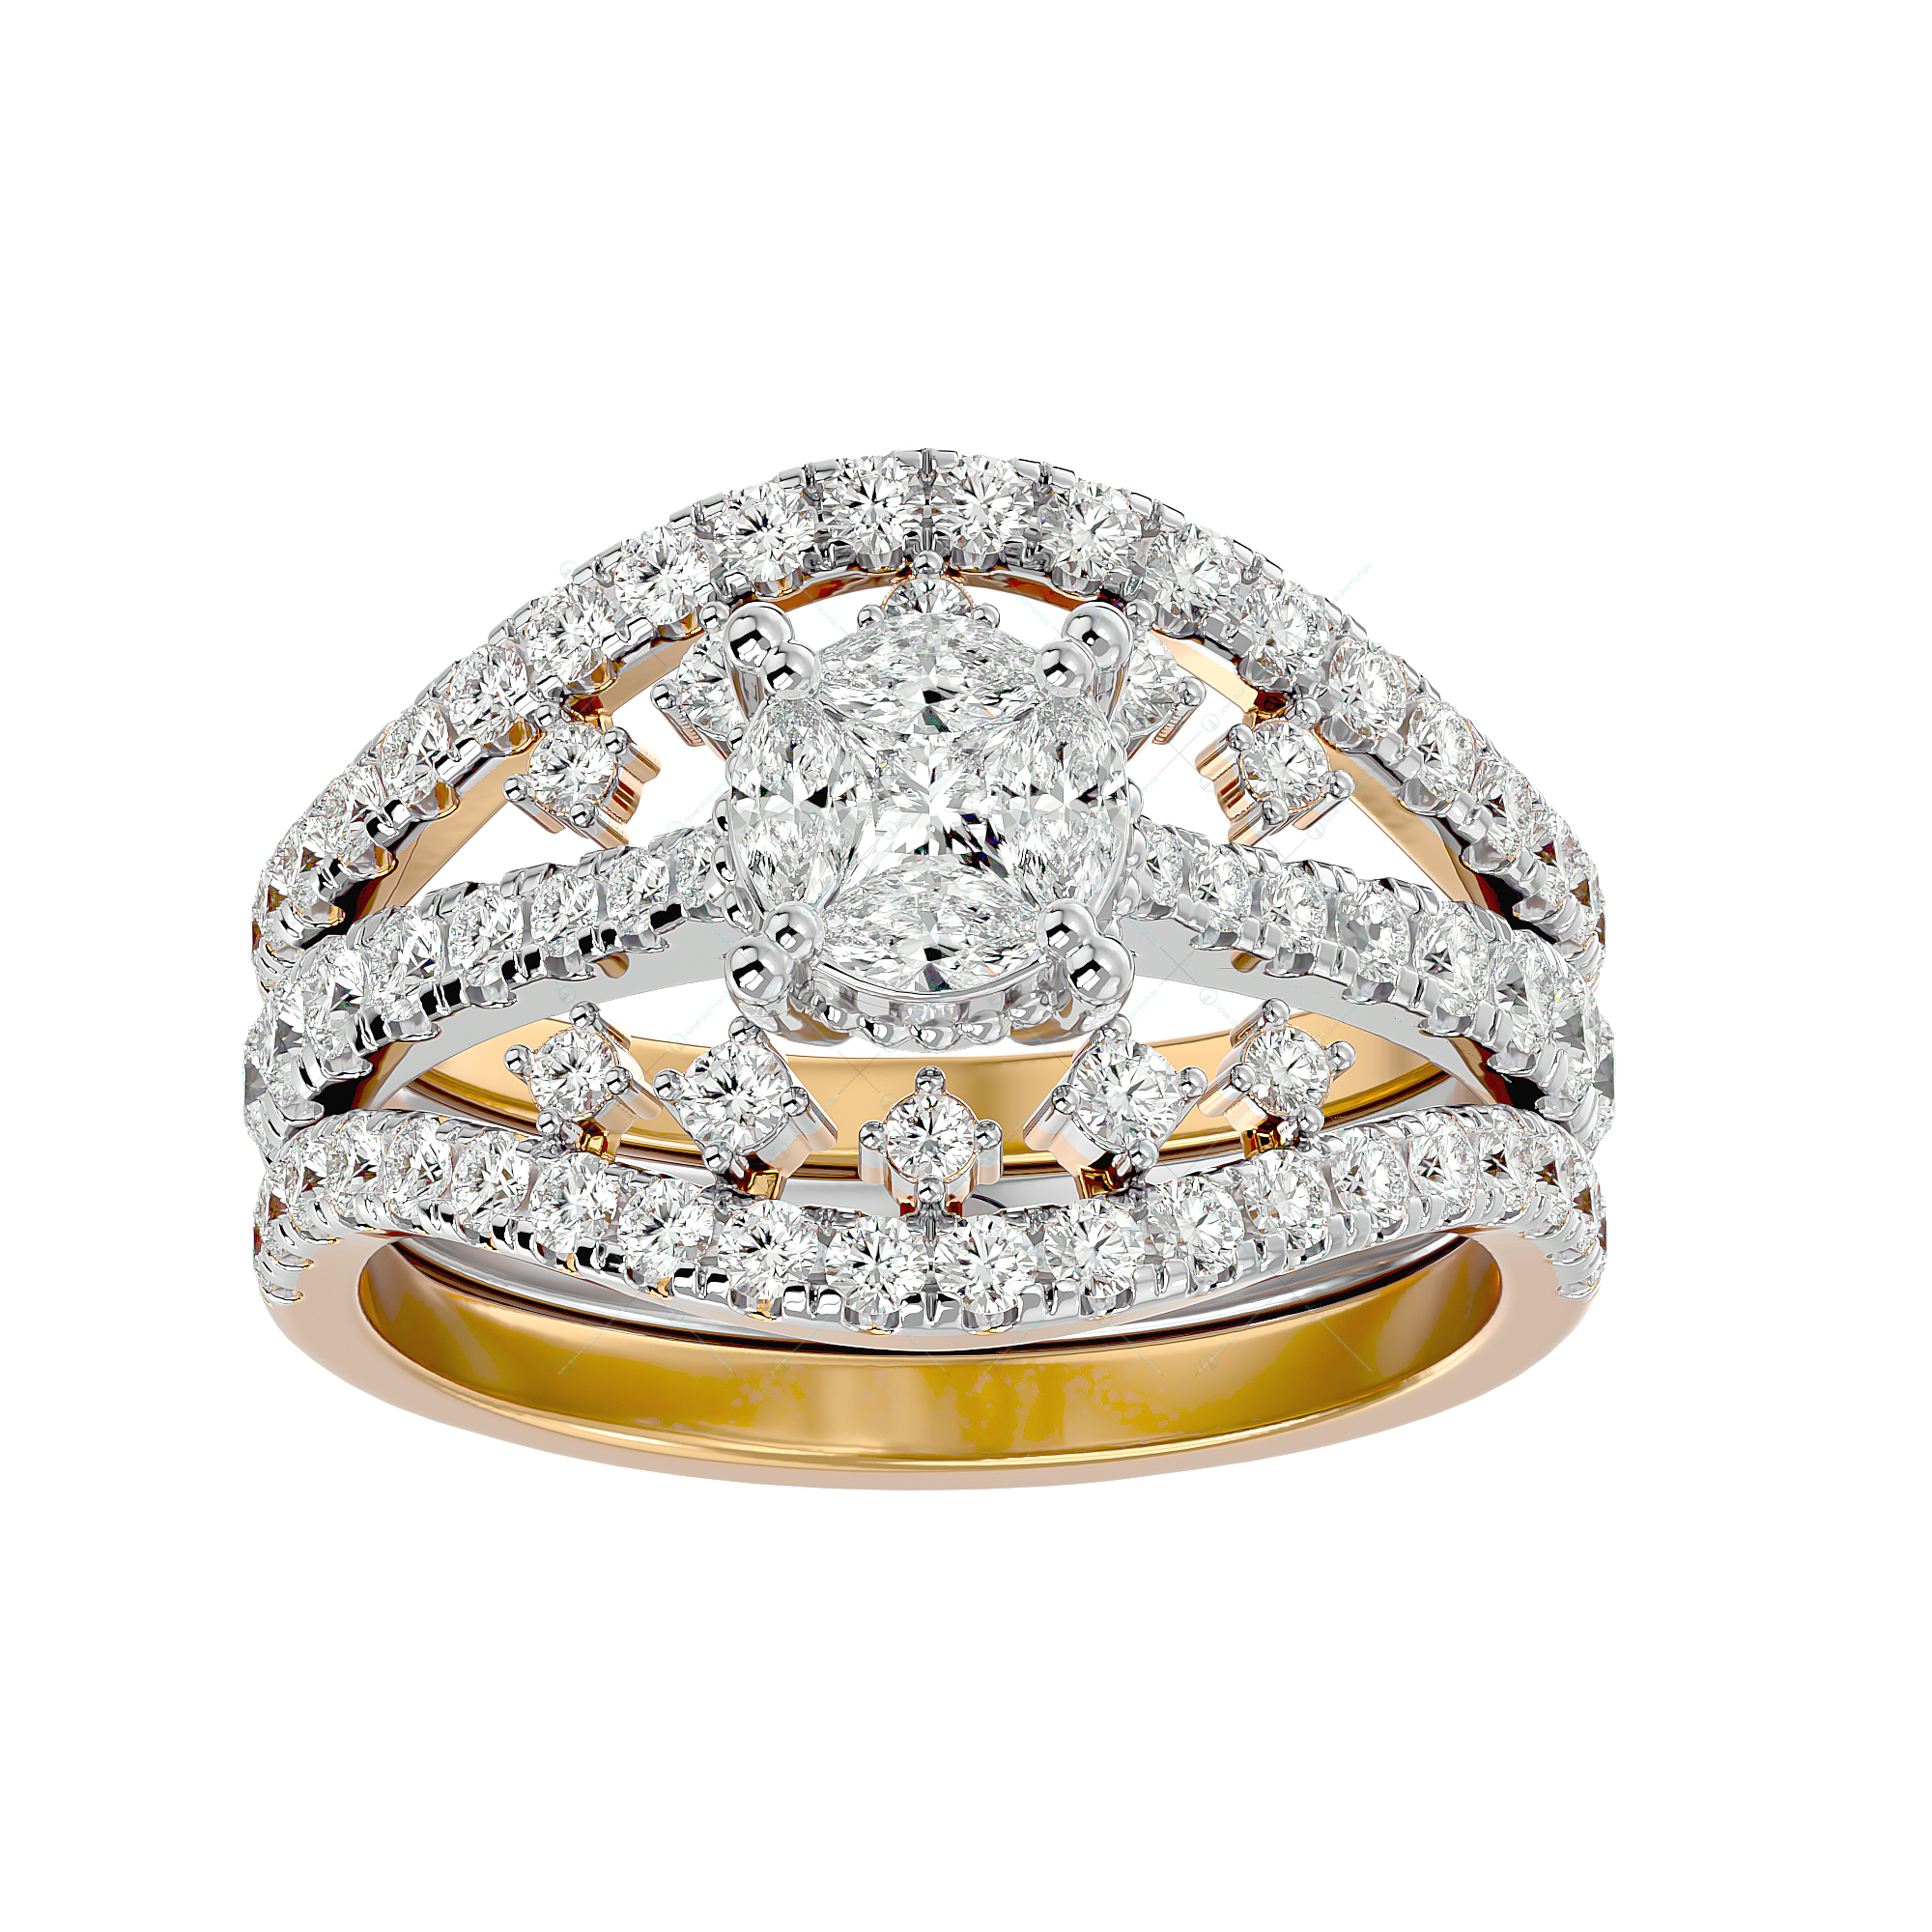 Ethereal Elegance Solitaire Illusion Diamond Ring in Yellow Gold for Women v2